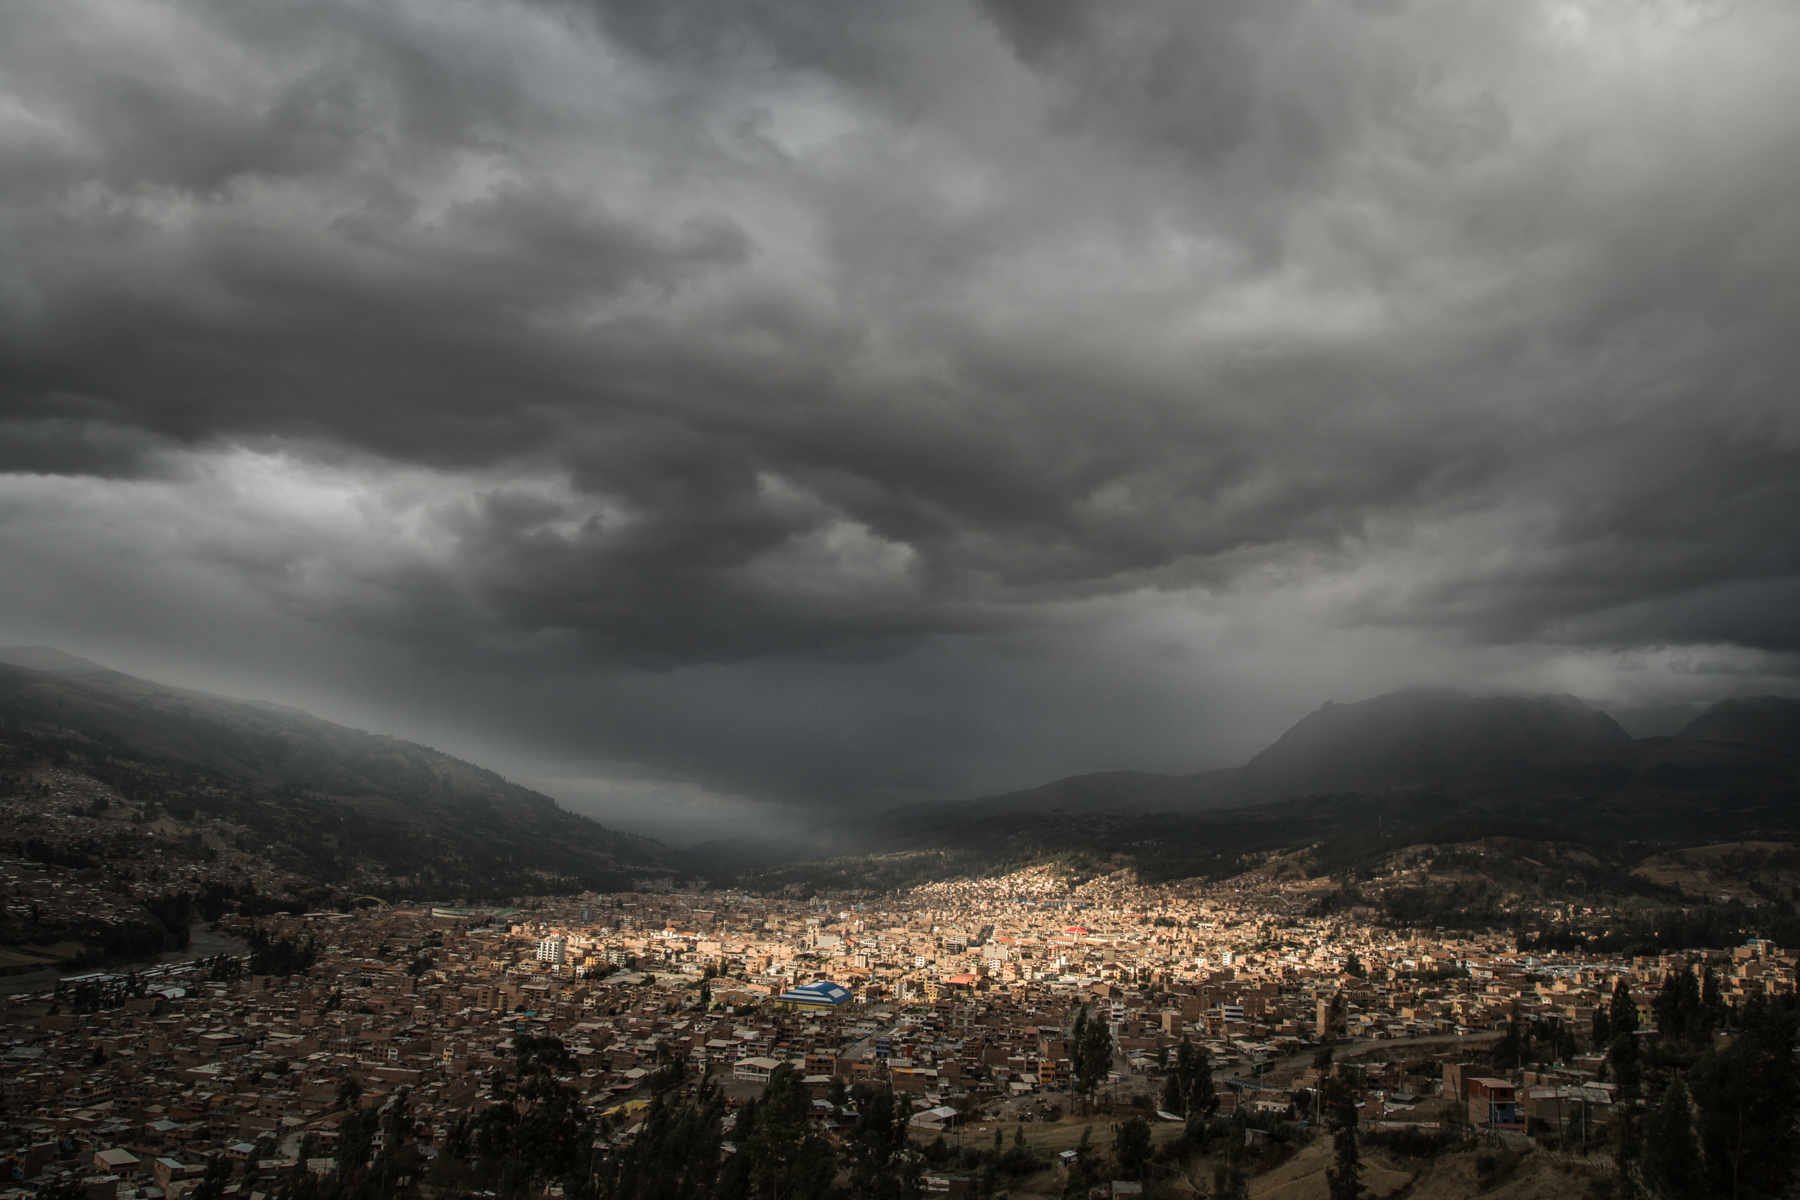 When the last flood caused by Palcacocha occurred in Huaraz, in 1941, the population of the city was approximately 35'000 people. Now, the city is between 150'000 and 180'000 people and counting.